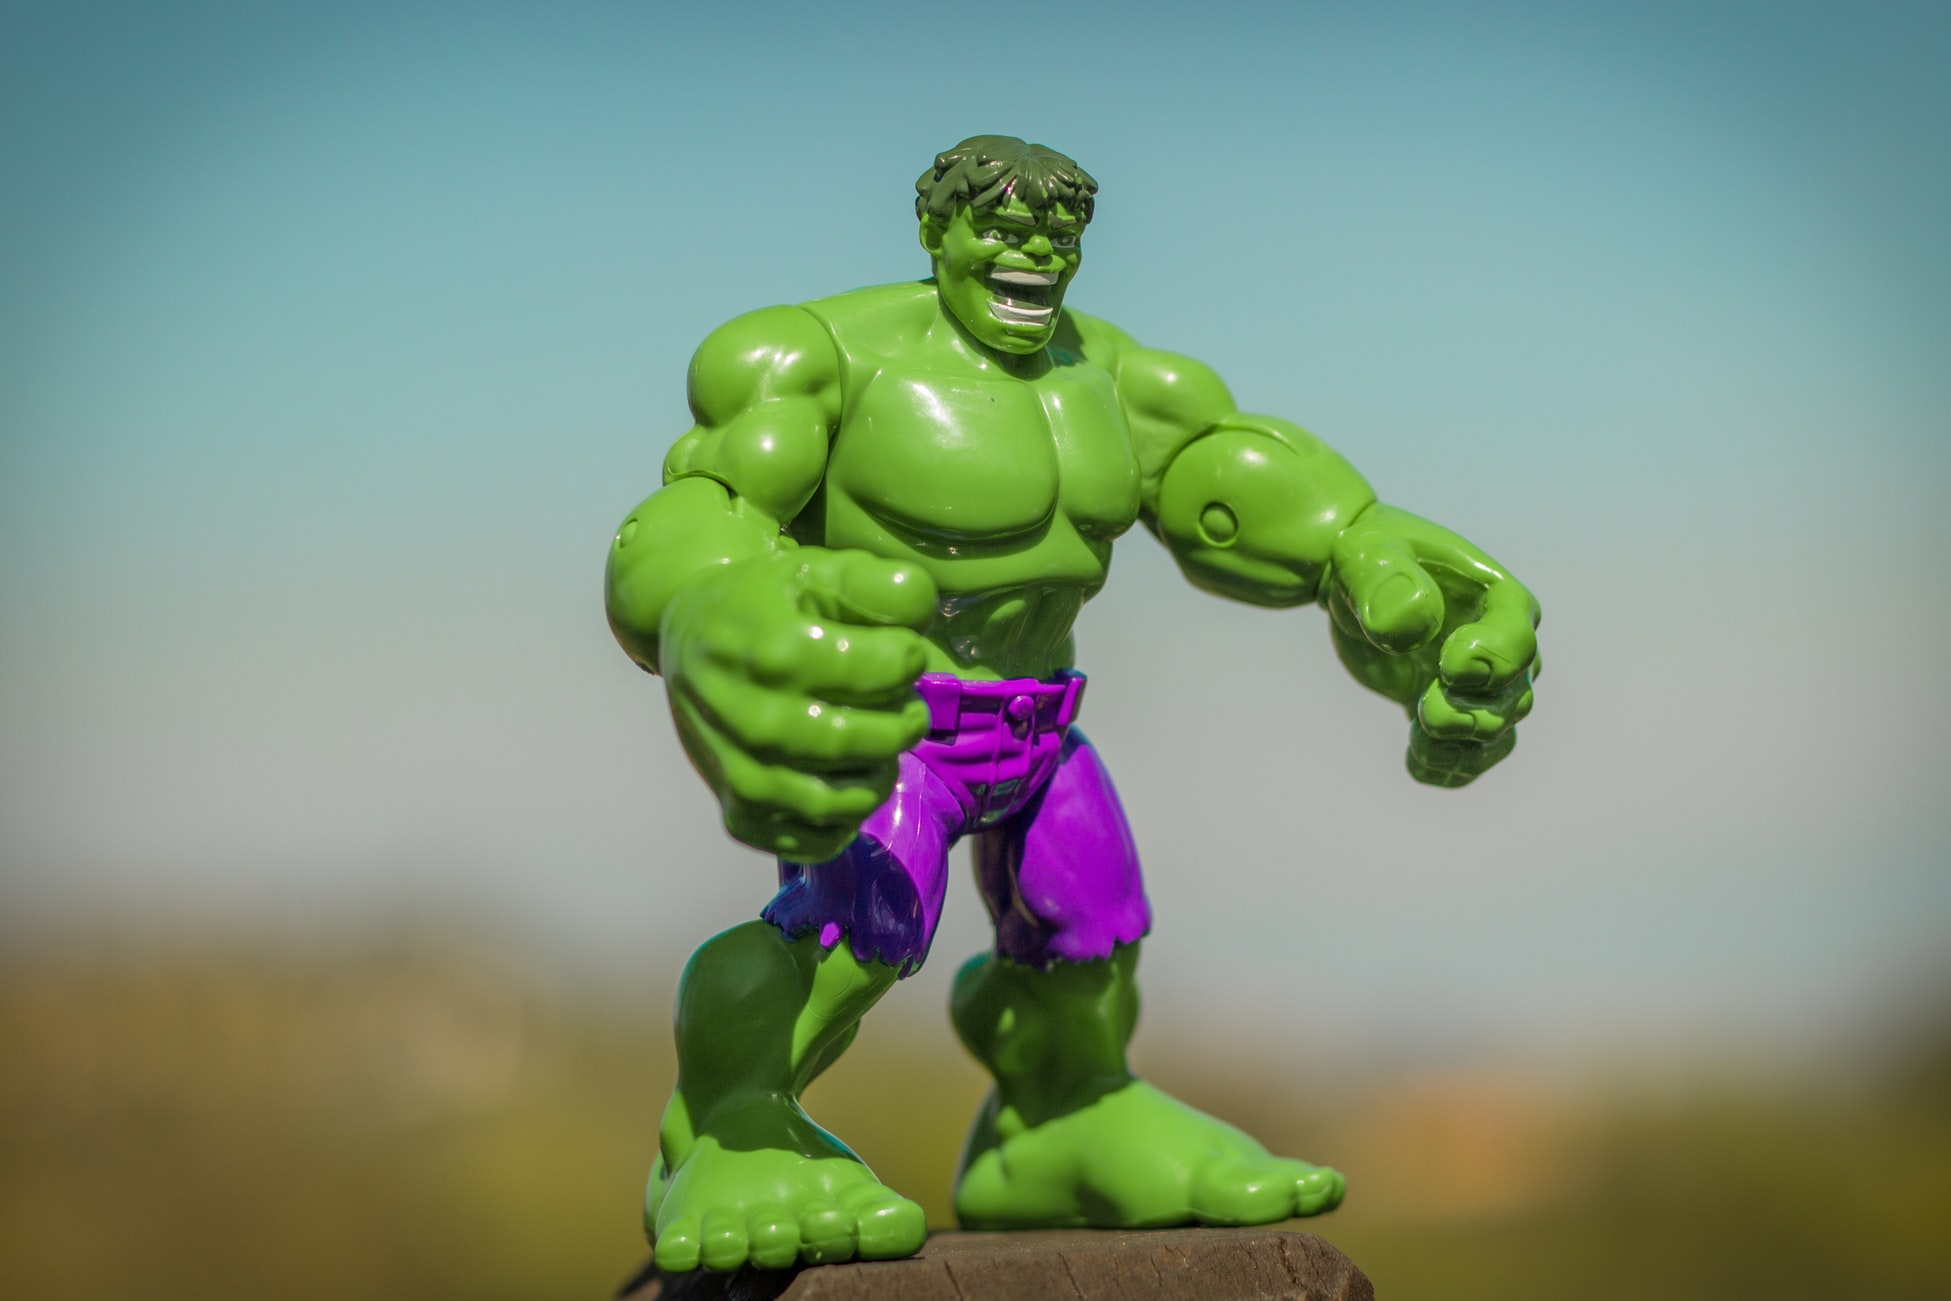 Incredible hulk figurine symbolizing the effort to control overconfidence bias